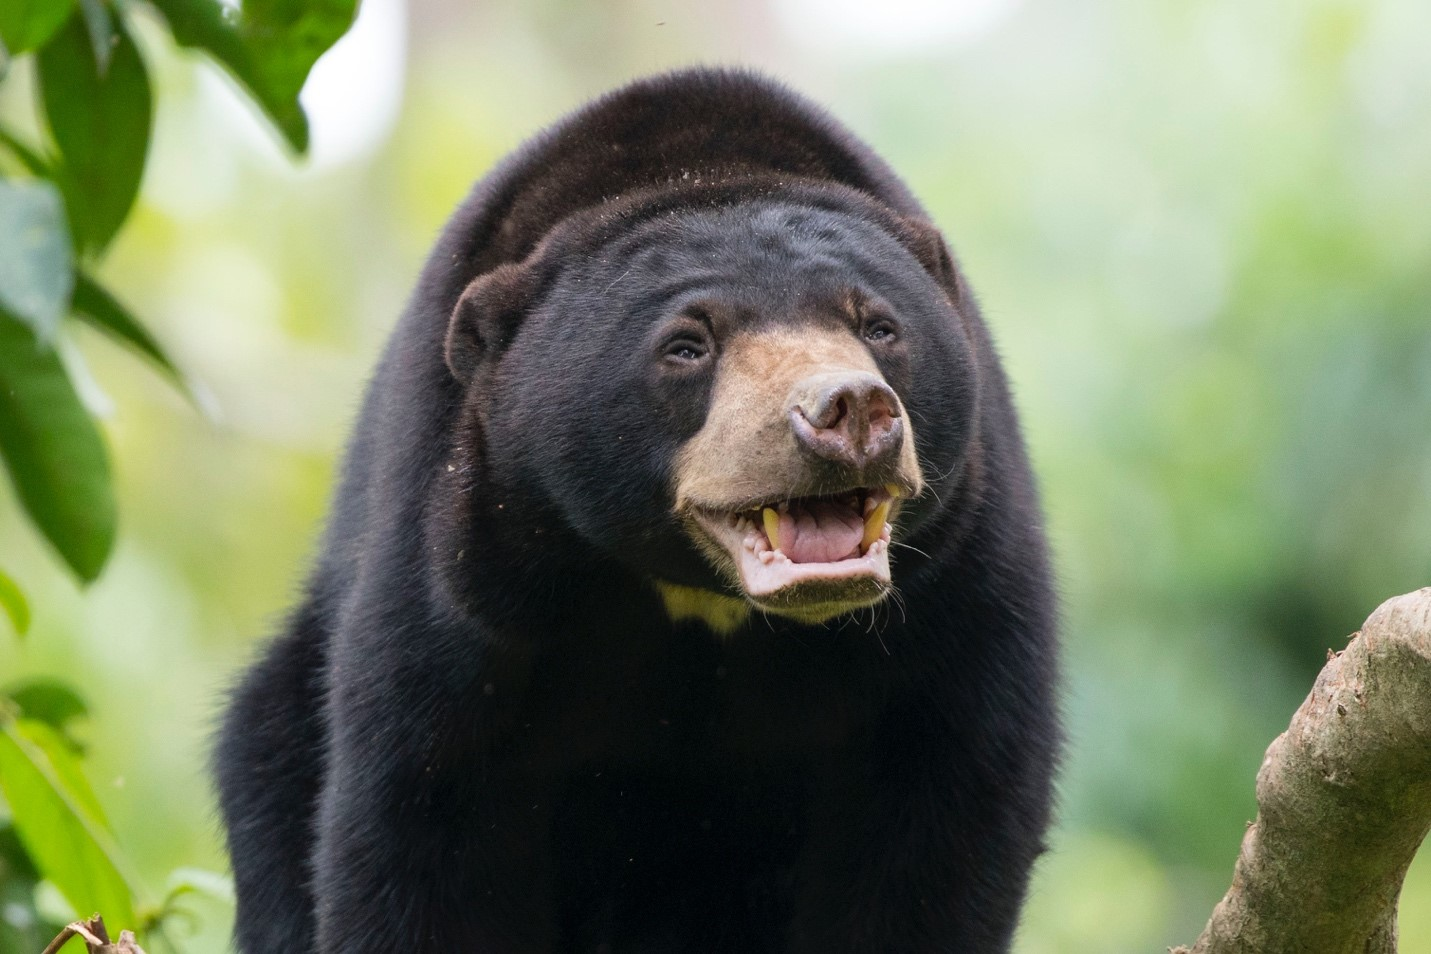 a cute bornean sun bear gets close to the camera and puts on a smile